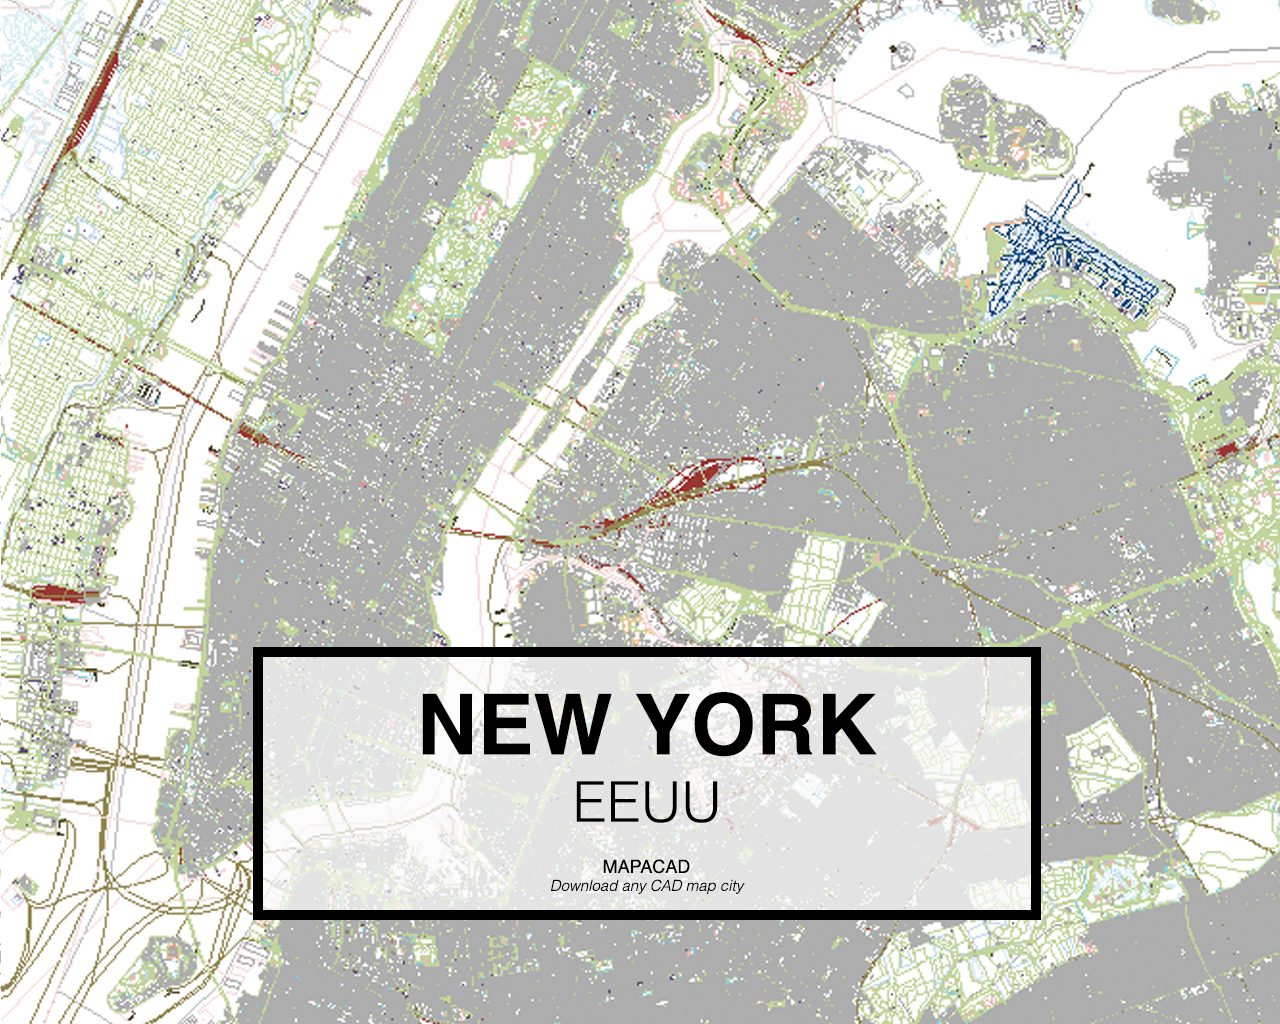 Download new york dwg mapacad new york eeuu 01 mapacad download map cad gumiabroncs Choice Image